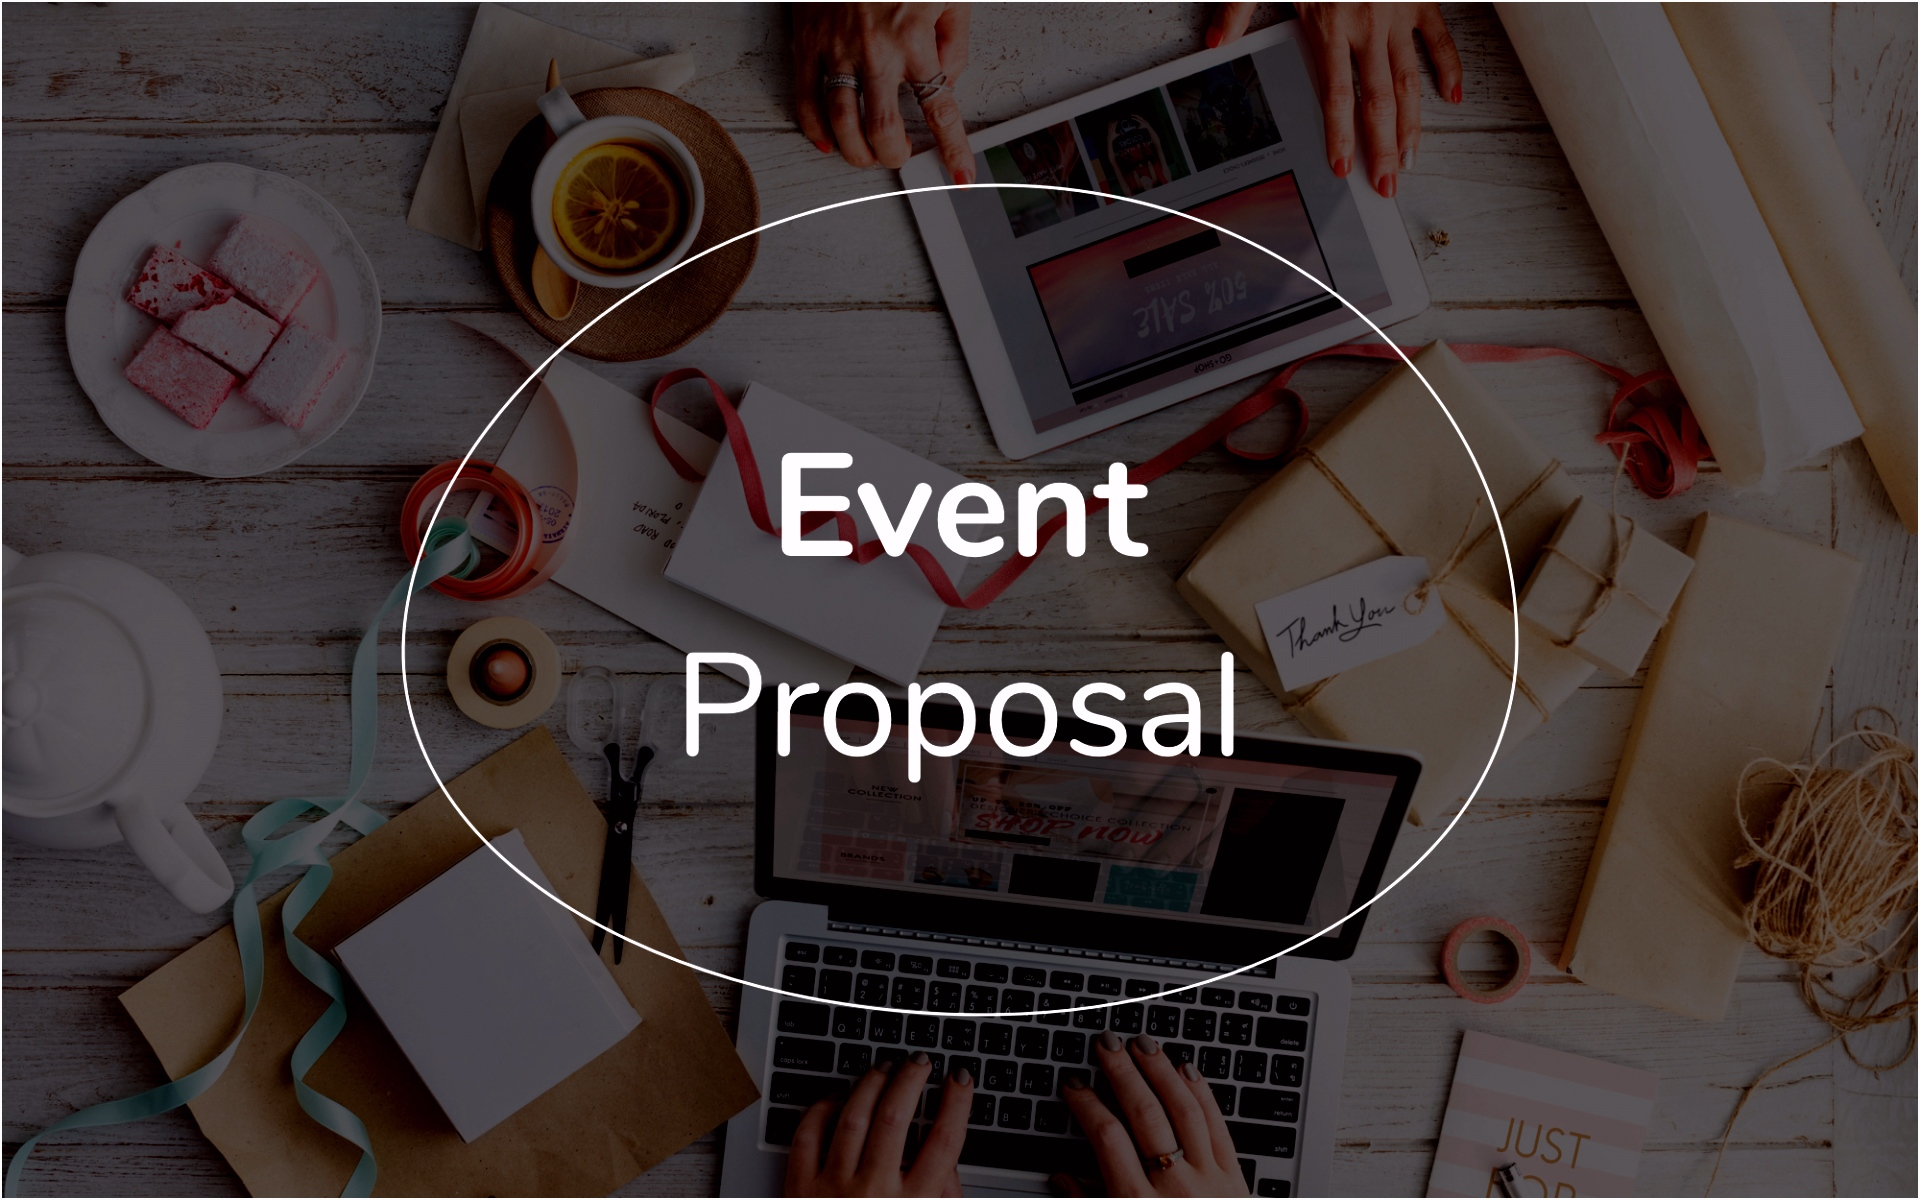 Eventkalender Vorlage event Proposal Template Free Pdf & Ppt Download — Slidebean C0zu61gbj1 Tsbwh2tpxu